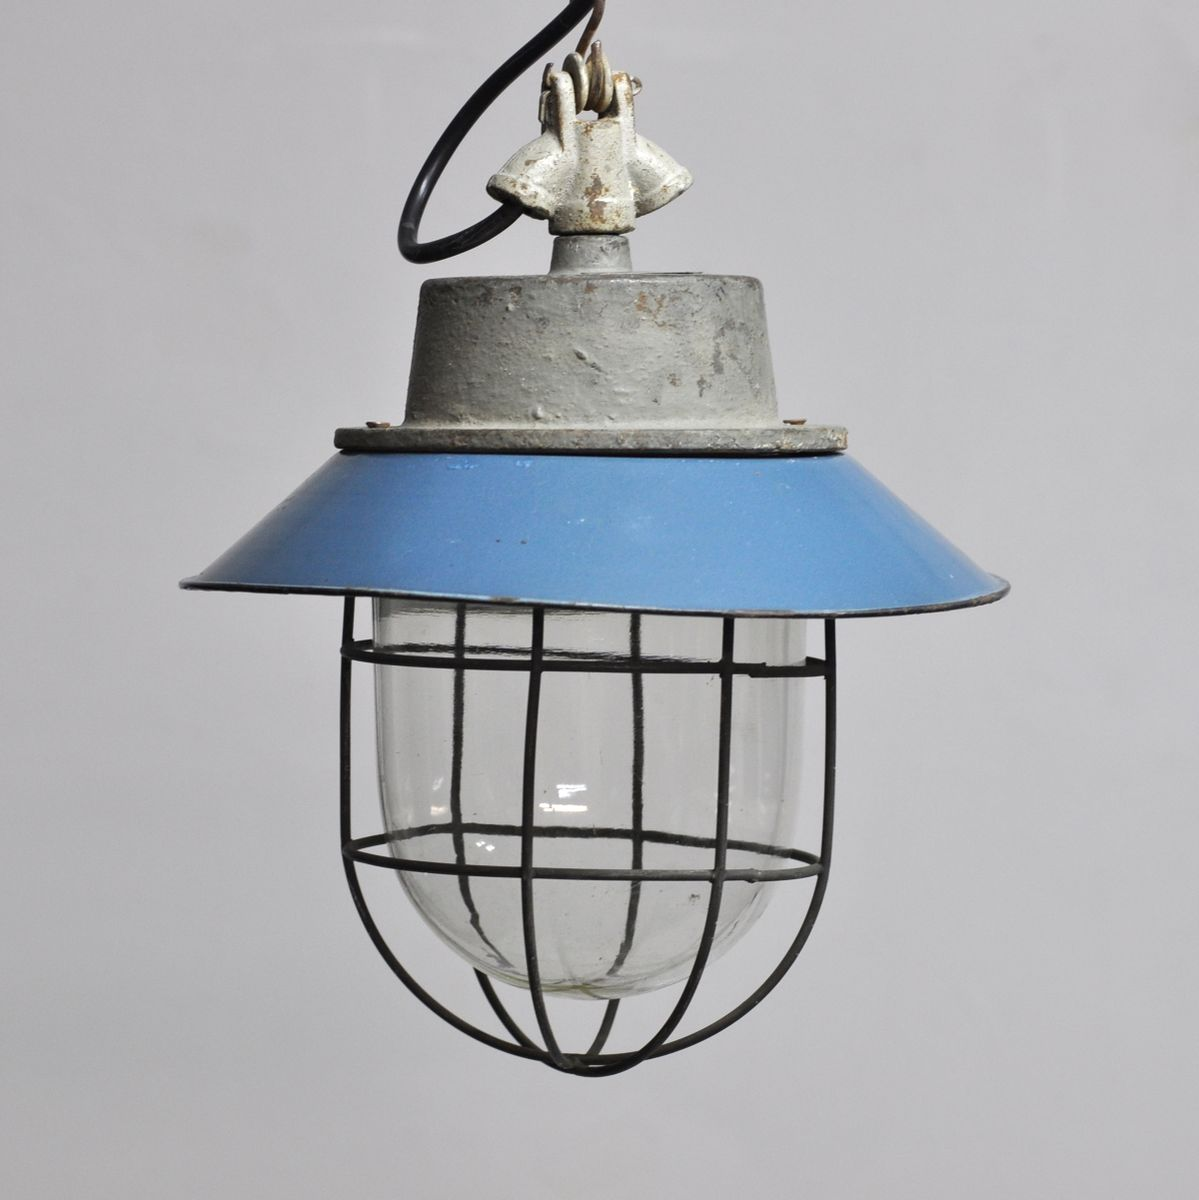 Lampe suspension d 39 usine industrielle c 11 1960s en vente sur pamono - Lampe suspension industrielle ...